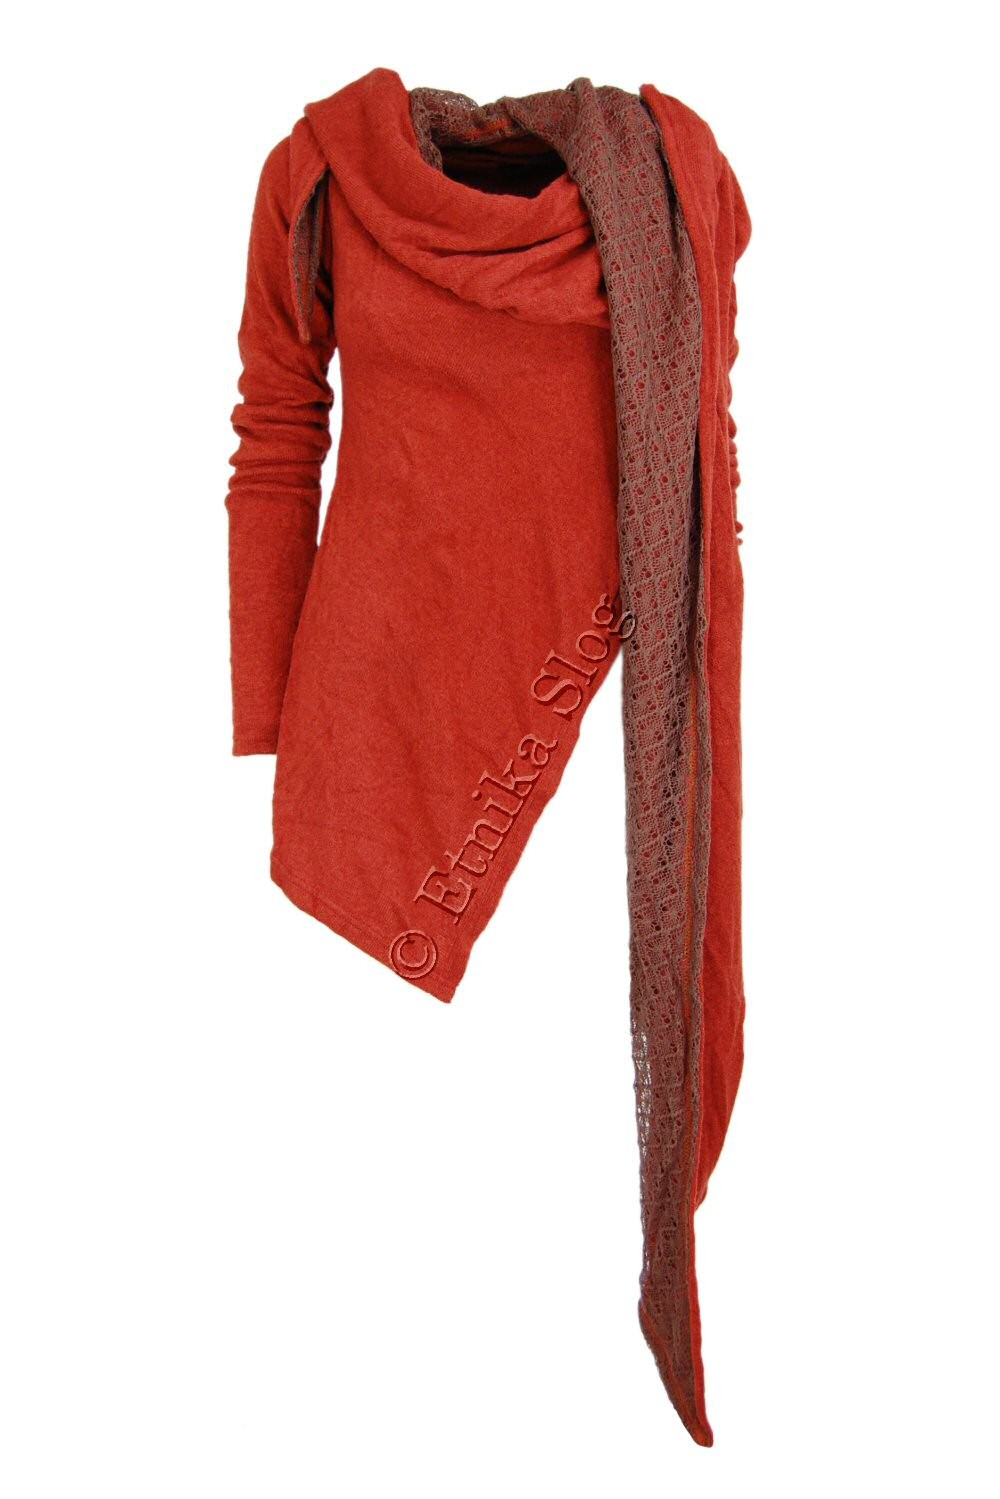 CAPES AND PONCHO AB-THJ026 - Oriente Import S.r.l.